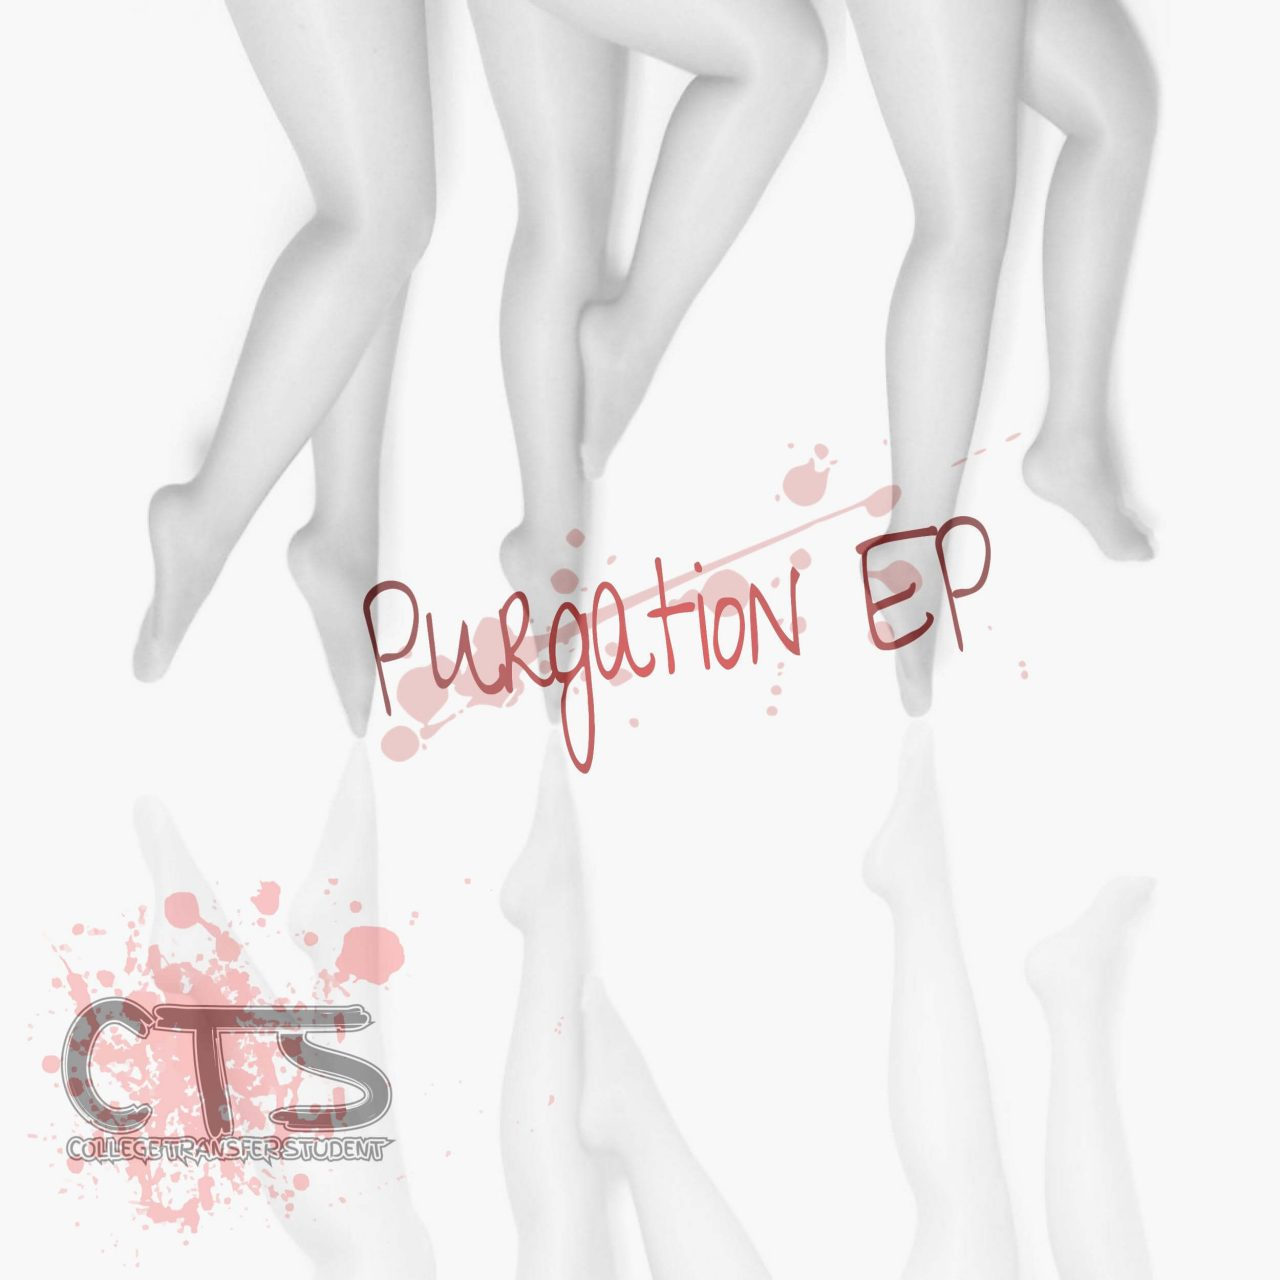 https://www.collegetransferstudent.com/wp-content/uploads/2019/04/Front-CD-Artwork-_-Purgation-EP-Album-Artwork_CDBABY-1280x1280.jpg